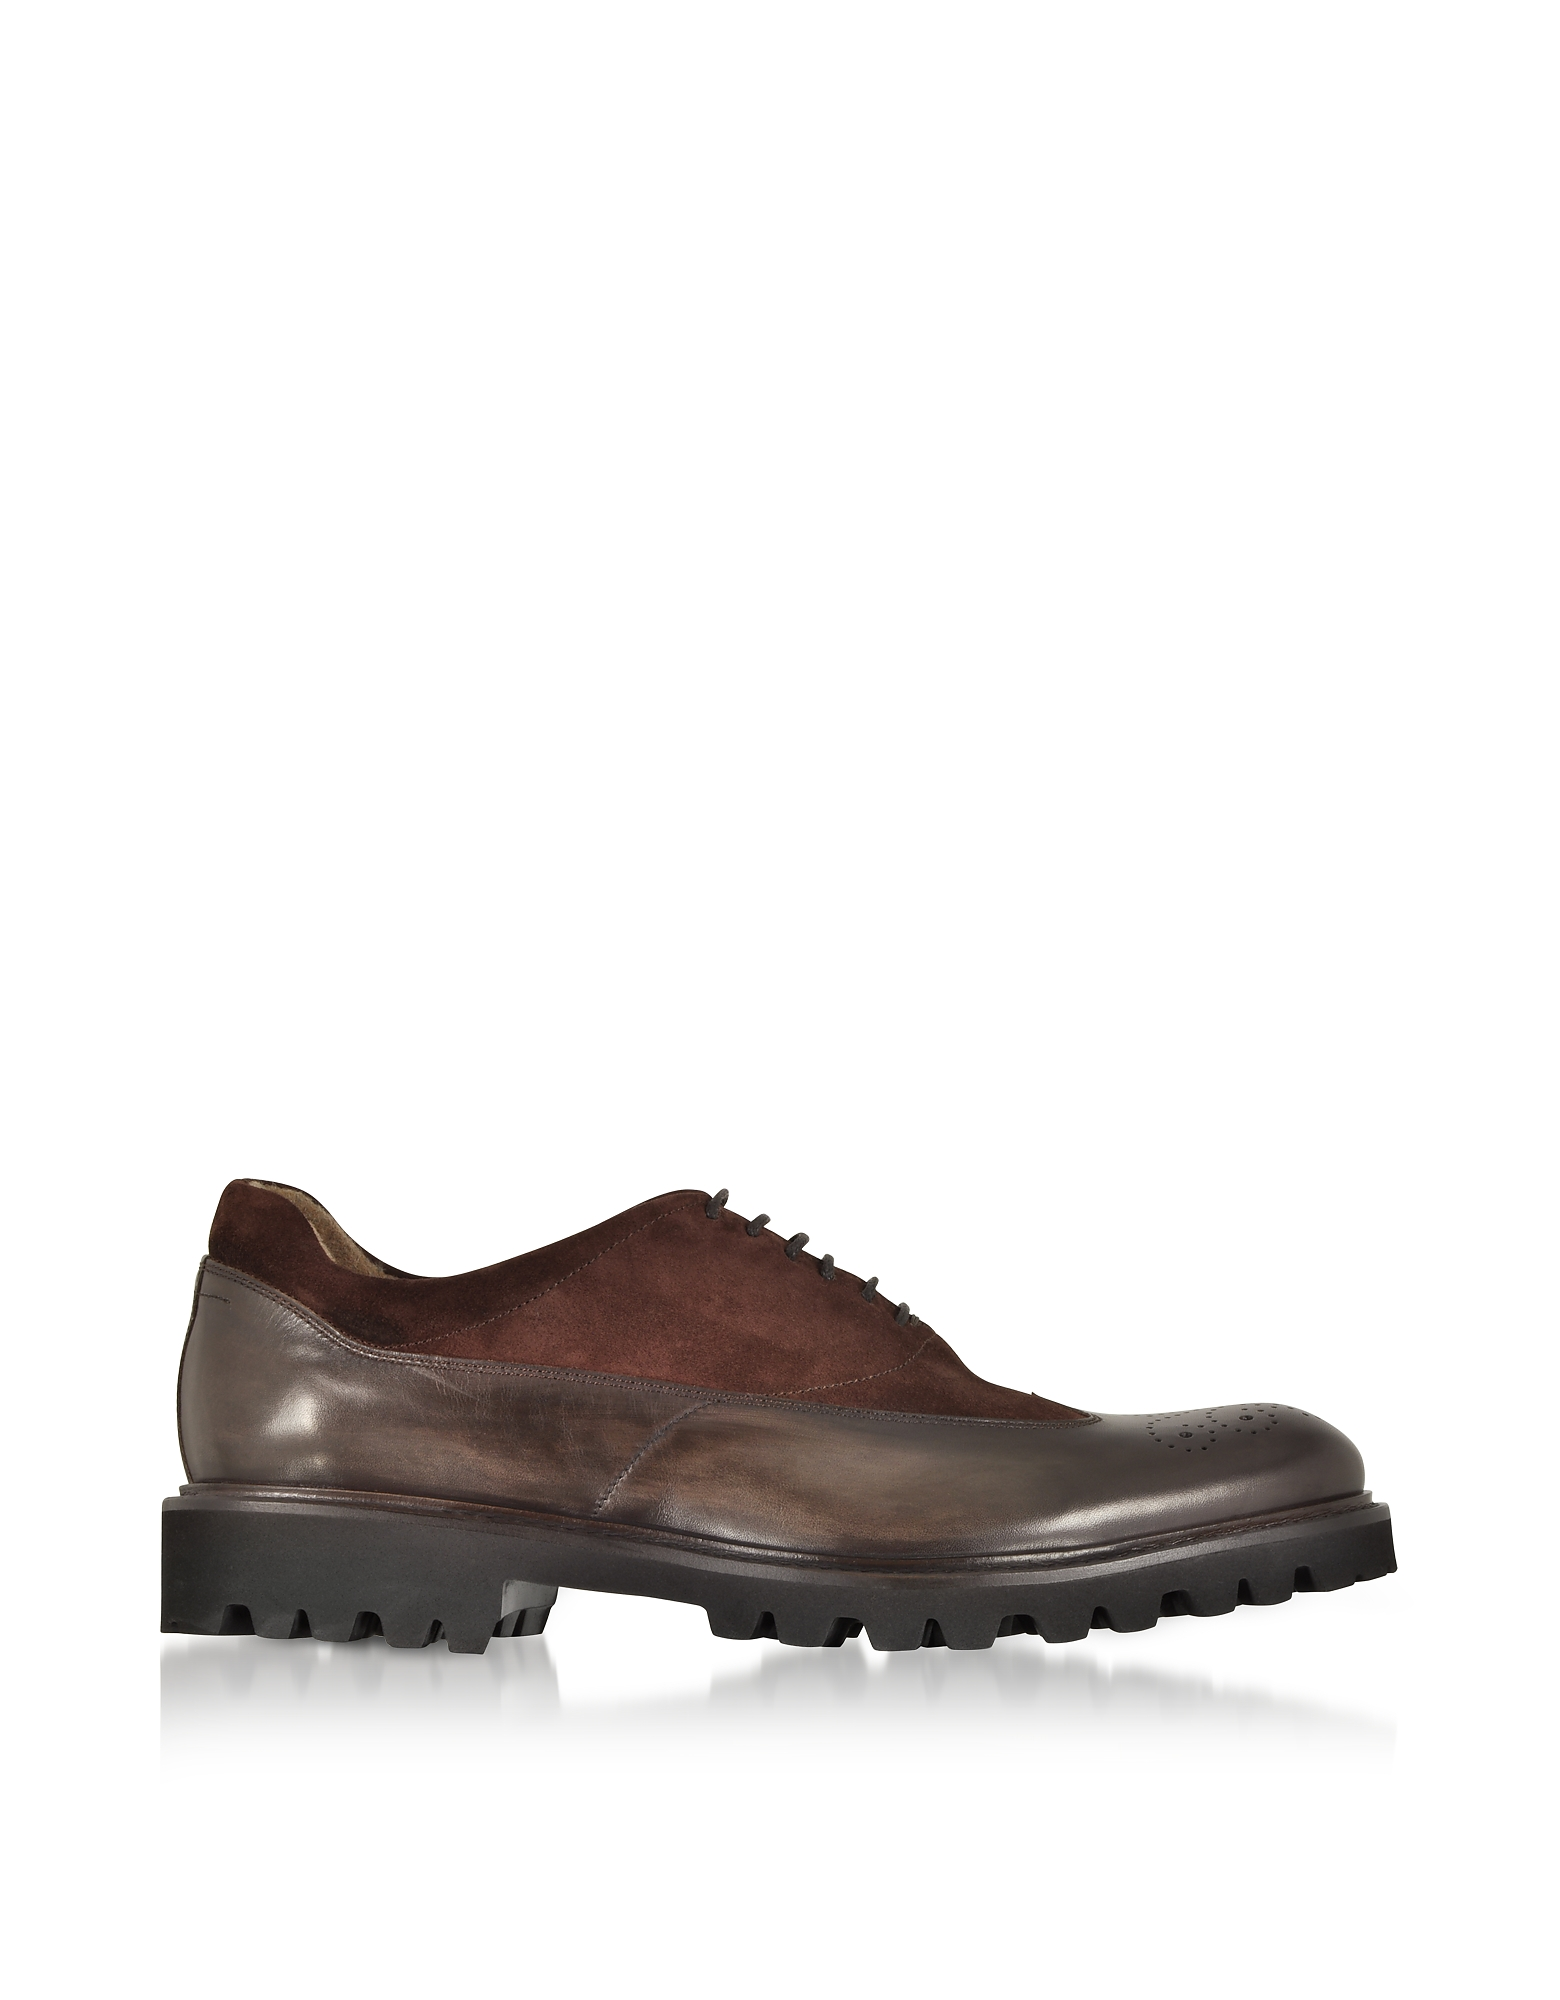 Fratelli Borgioli Shoes, Ebony Leather and Suede Oxford Shoes